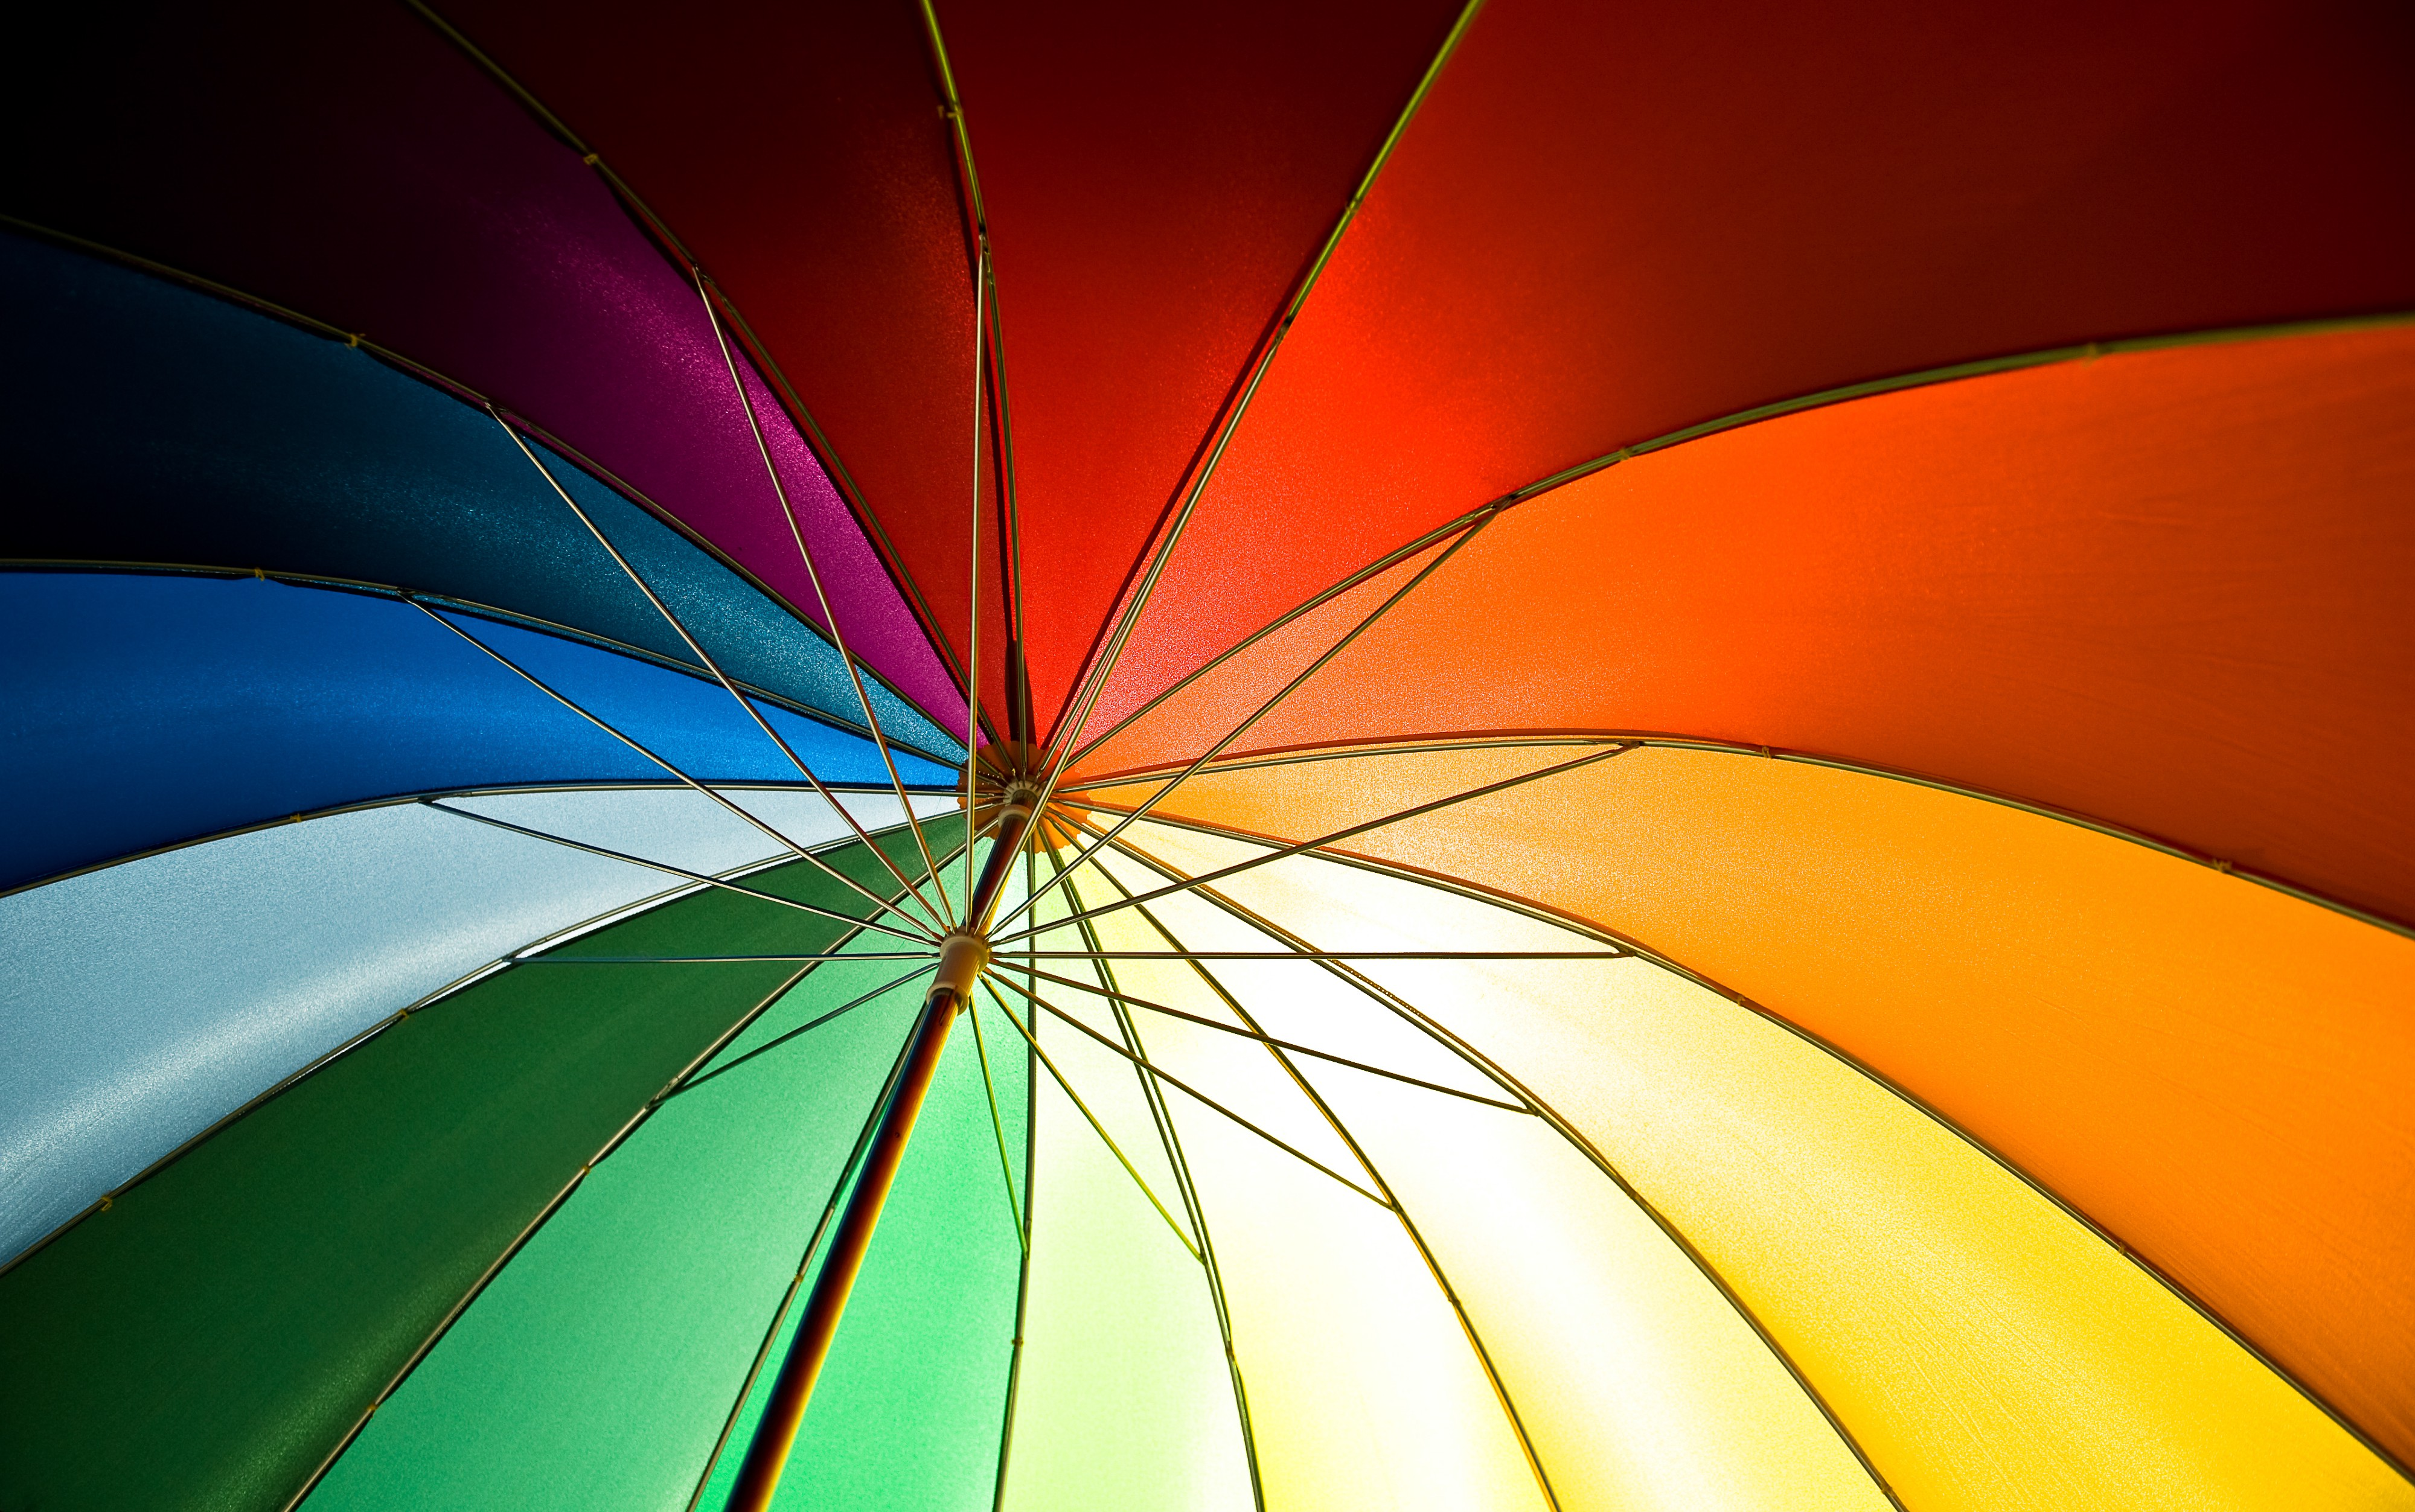 The inside of a rainbow-coloured umbrella, viewed from below